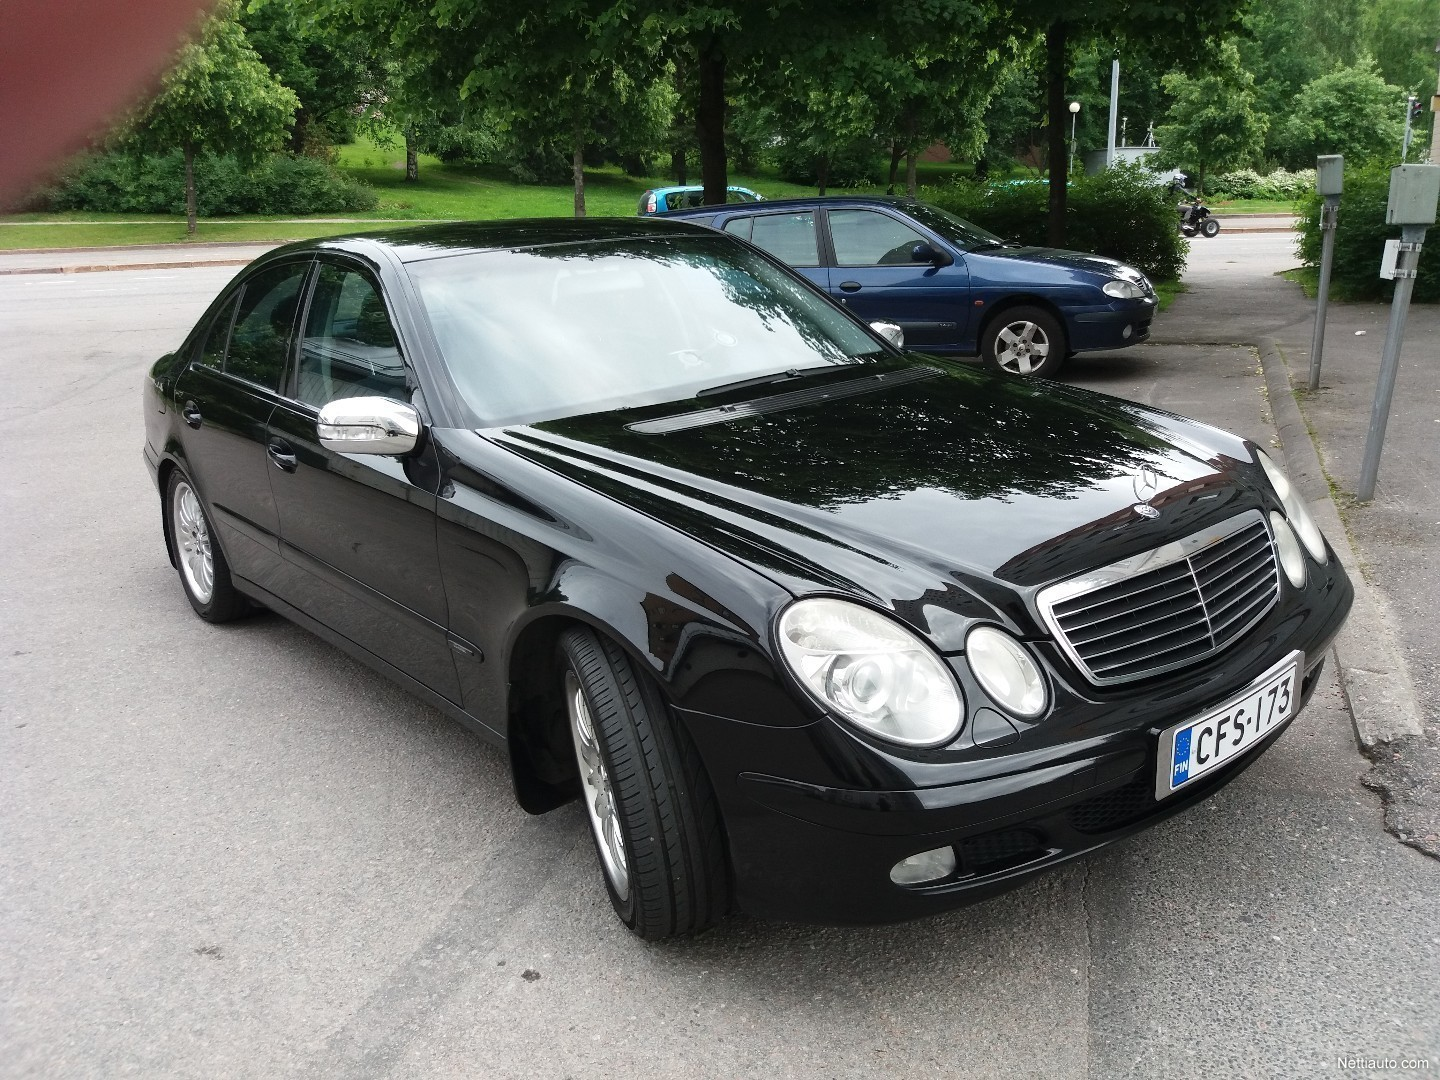 Mercedes benz e sedan 2003 used vehicle nettiauto for Mercedes benz remote start instructions